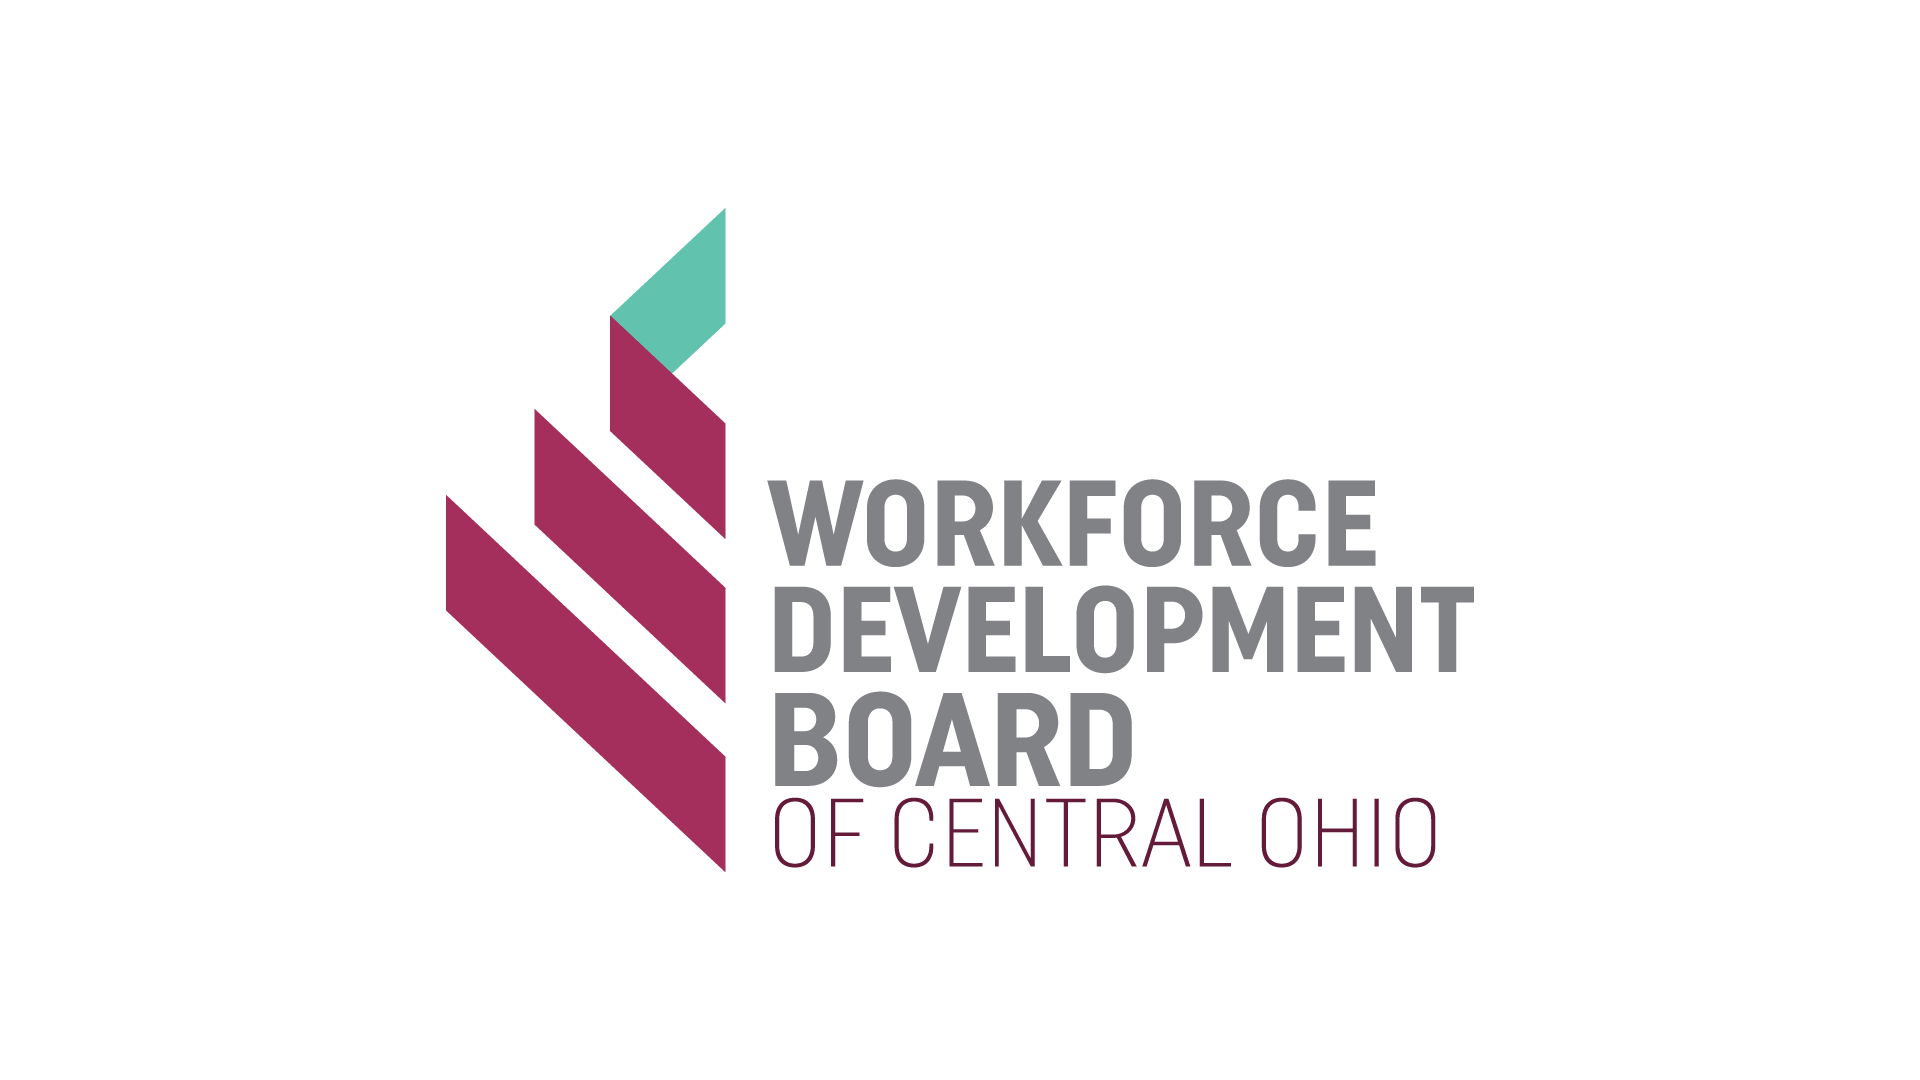 Workforce Development Board of Central Ohio logo